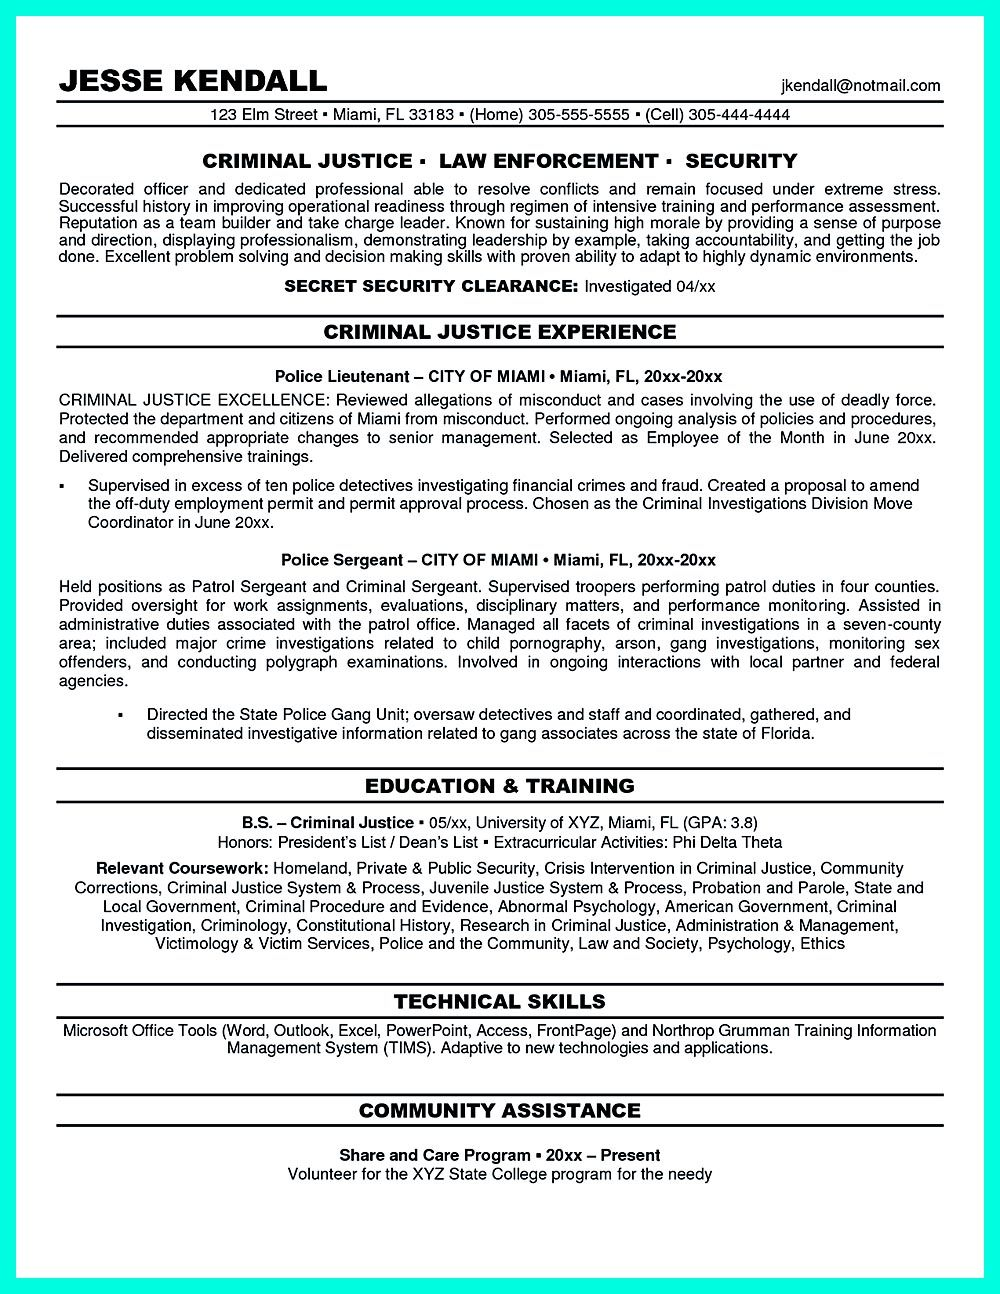 criminal justice resume uses summary section of the qualifications criminal justice resume uses summary section of the qualifications to highlight your experience from the previous